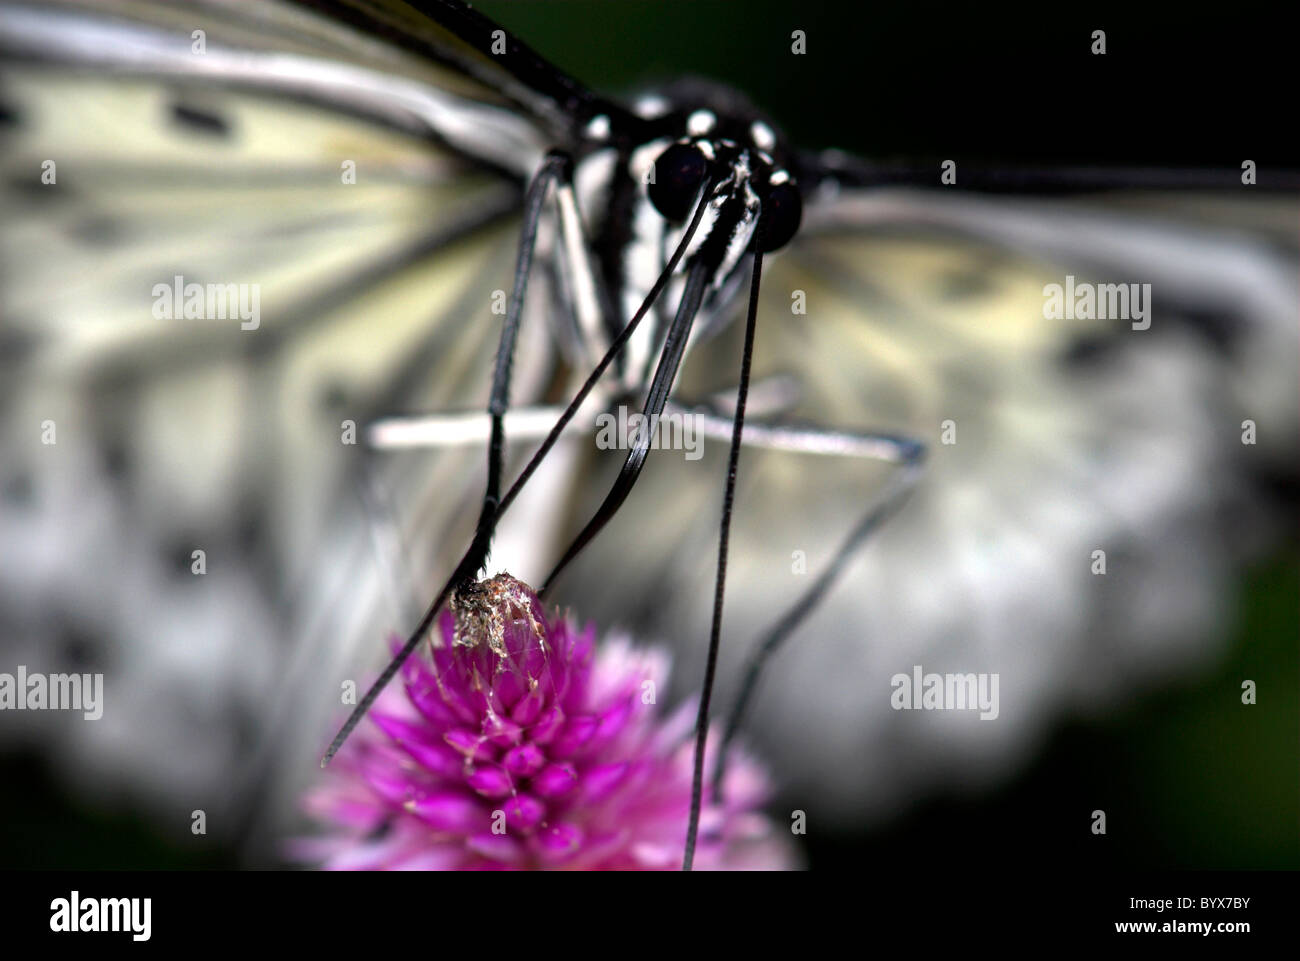 ButterflyIdea Asie leuconoe nymphe des arbres Photo Stock